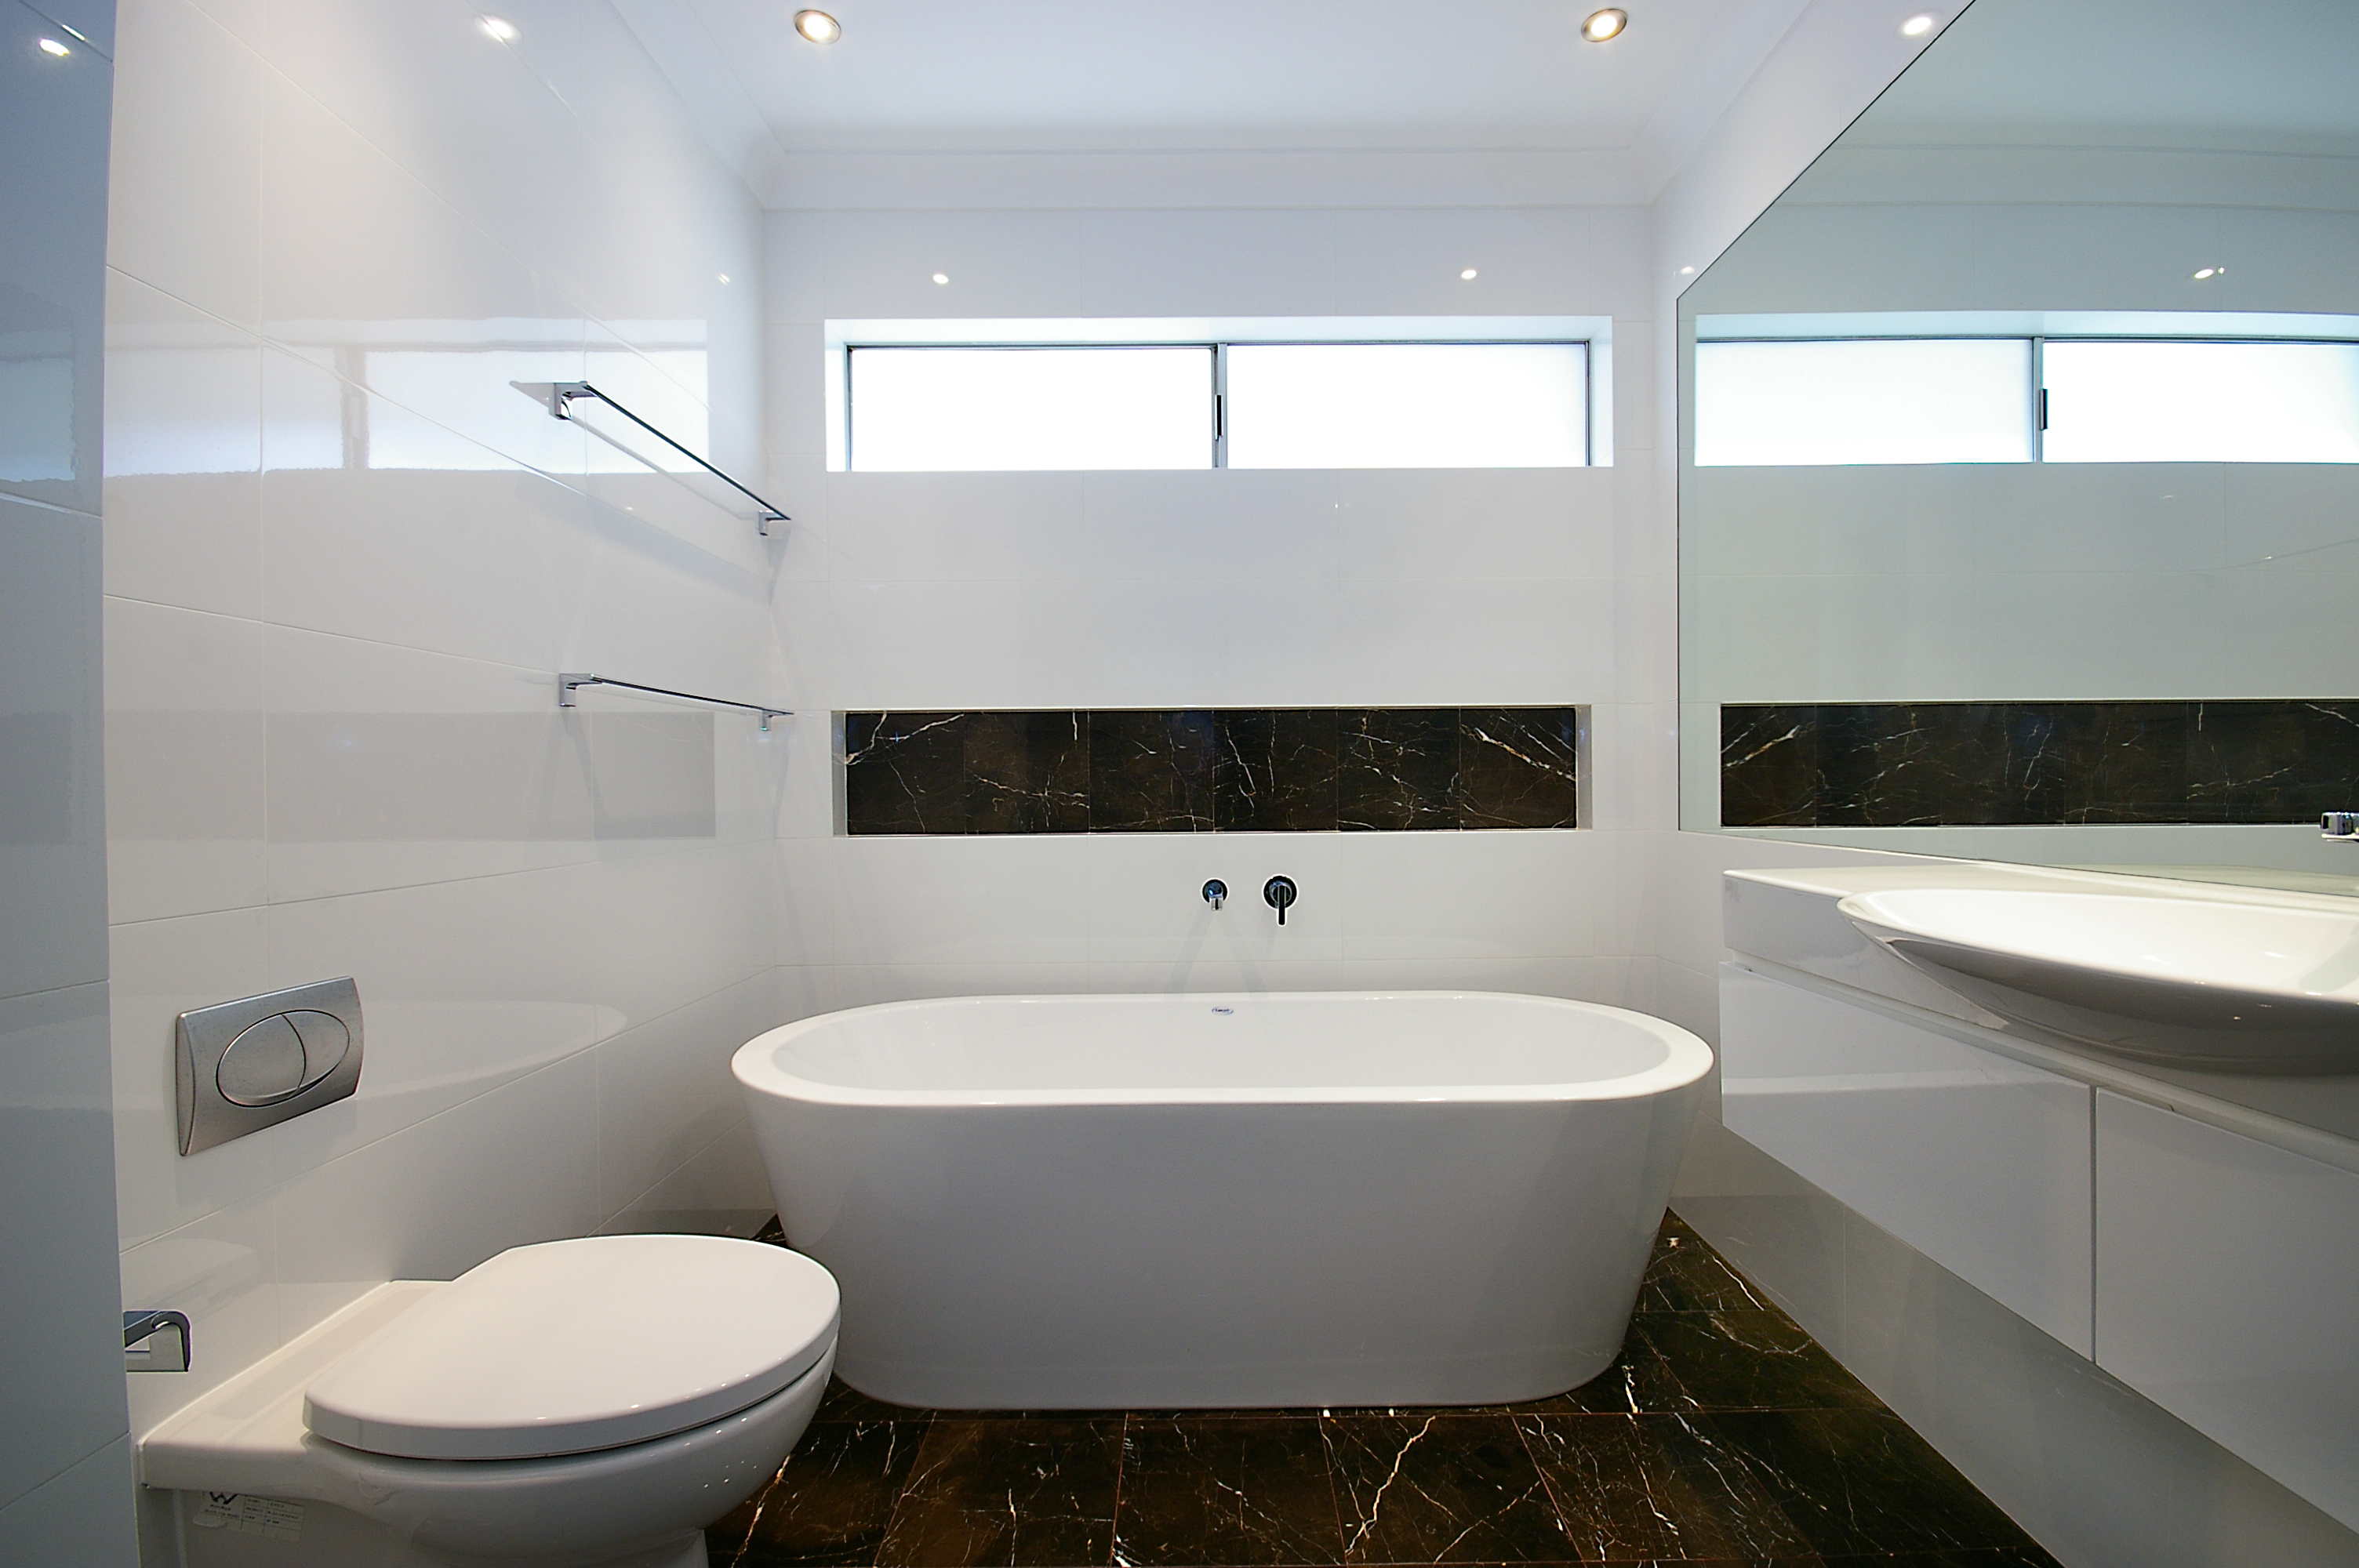 Hassle Free Bathrooms - The Australian Local Business Awards